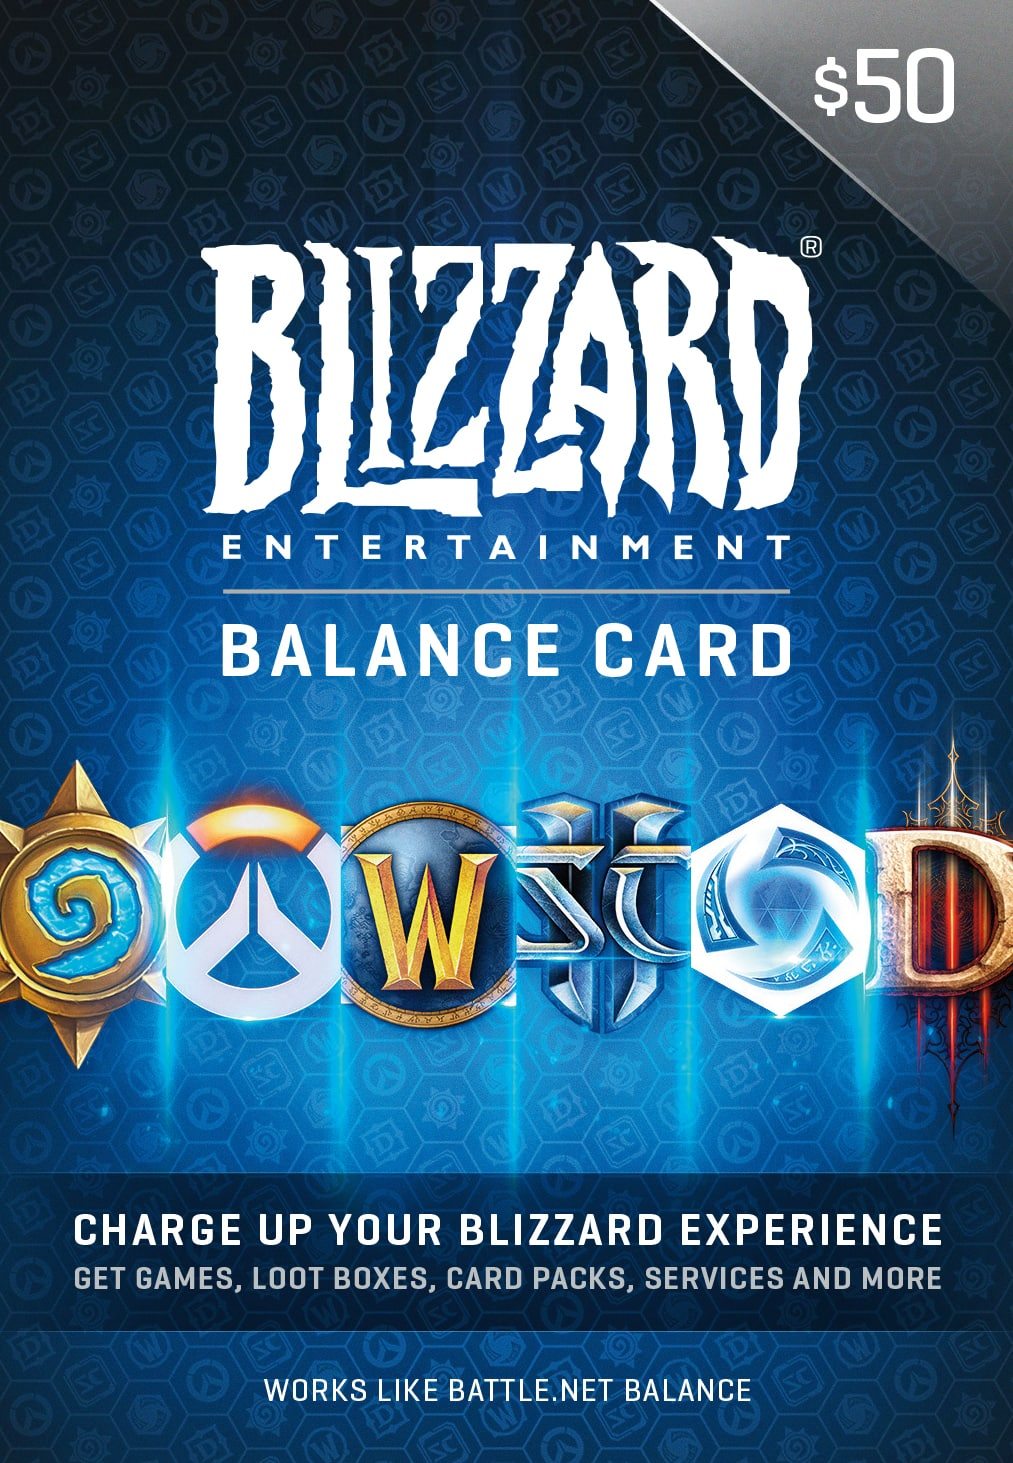 $50 Blizzard Battle.net Gift Card Balance for $40.72 via amazon